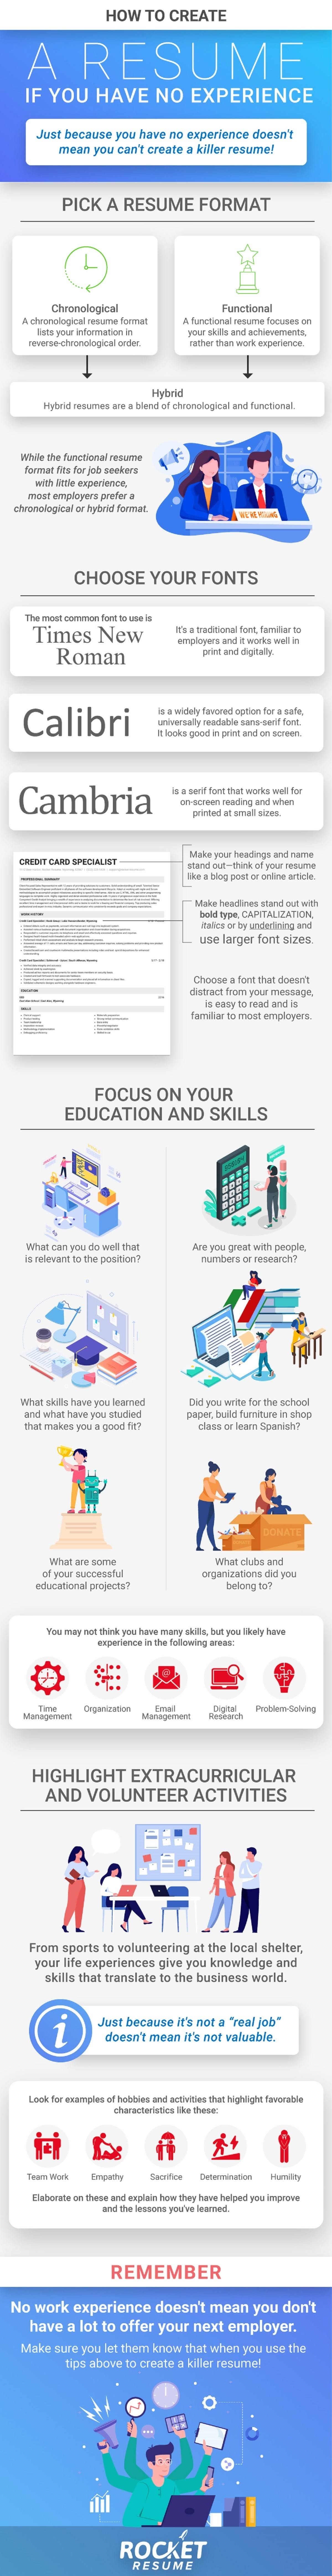 How to Create a Resume with No Experience #infographic